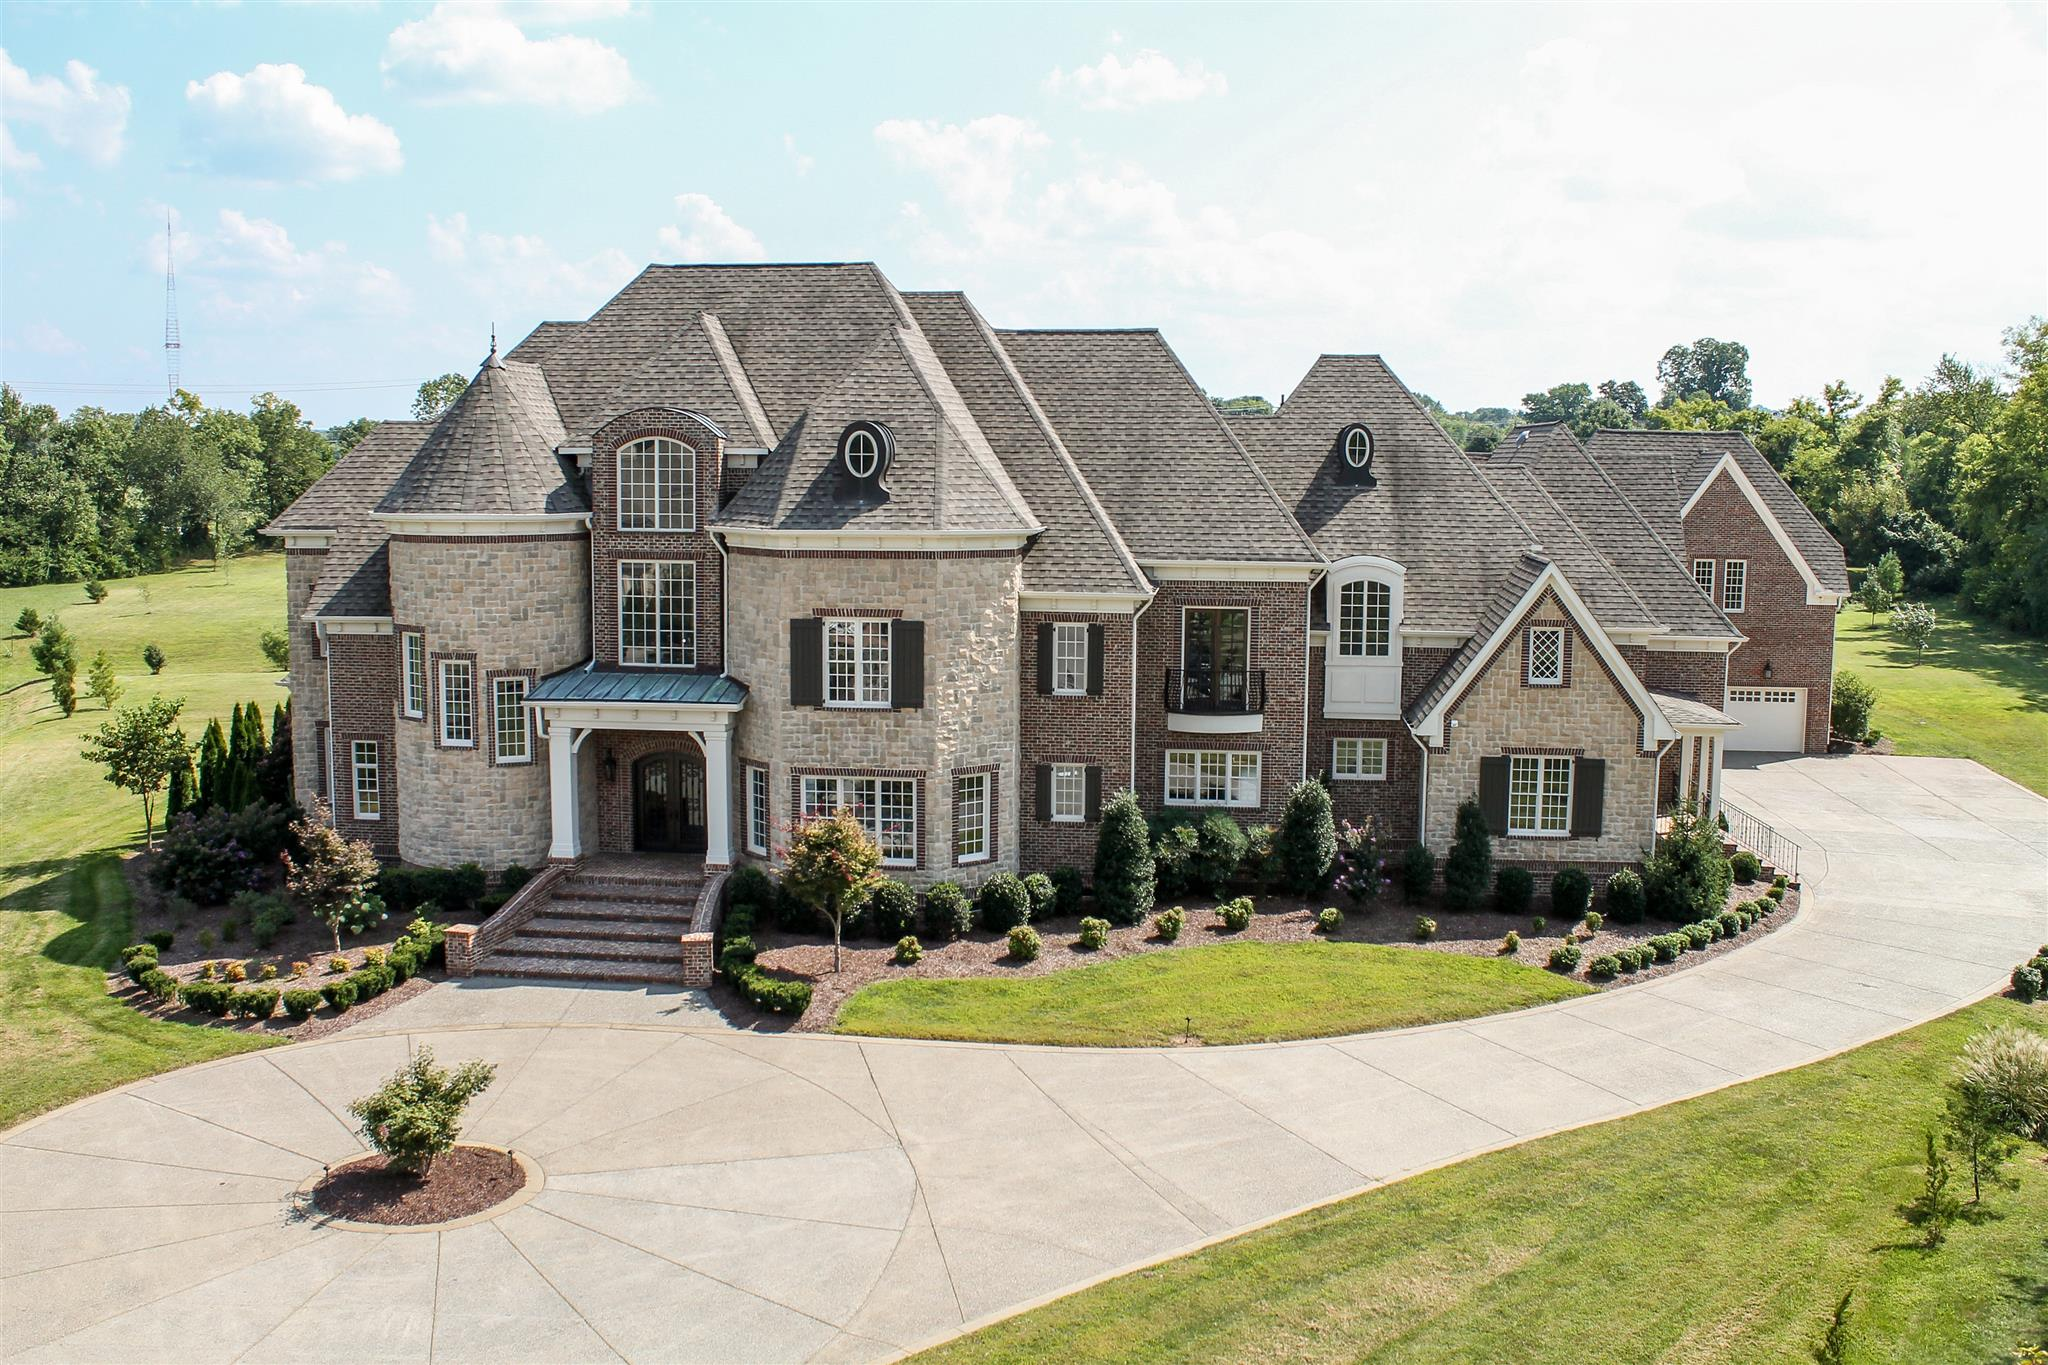 This ultimate estate for entertaining sits on 3+ acres in Brentwood. This 3-story luxury home is 14,680 sq. ft. with 6-car climate controlled garage, in-law quarters with a separate entrance, and an elevator that services garage & all levels of the home.